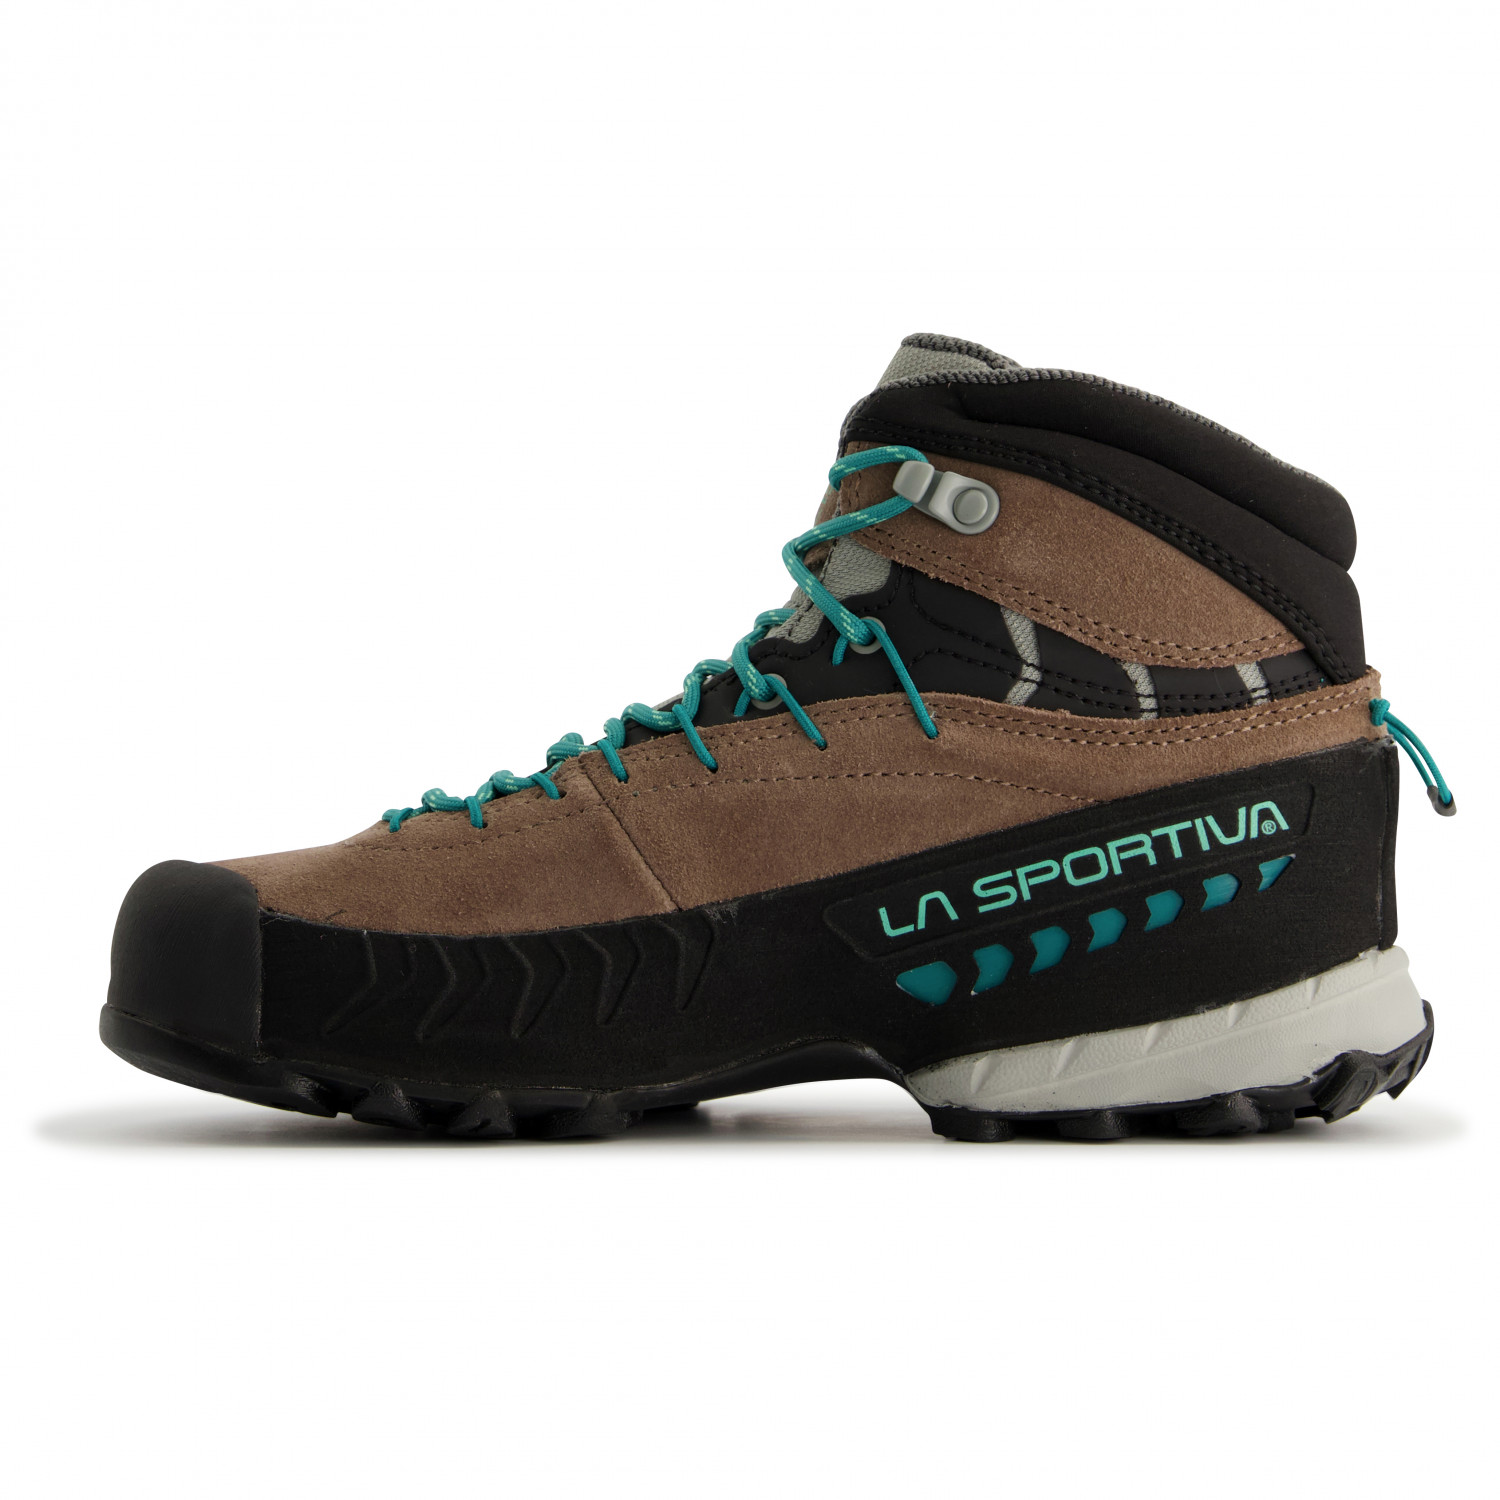 La Sportiva TX4 MID GTX Hiking Shoe Mens